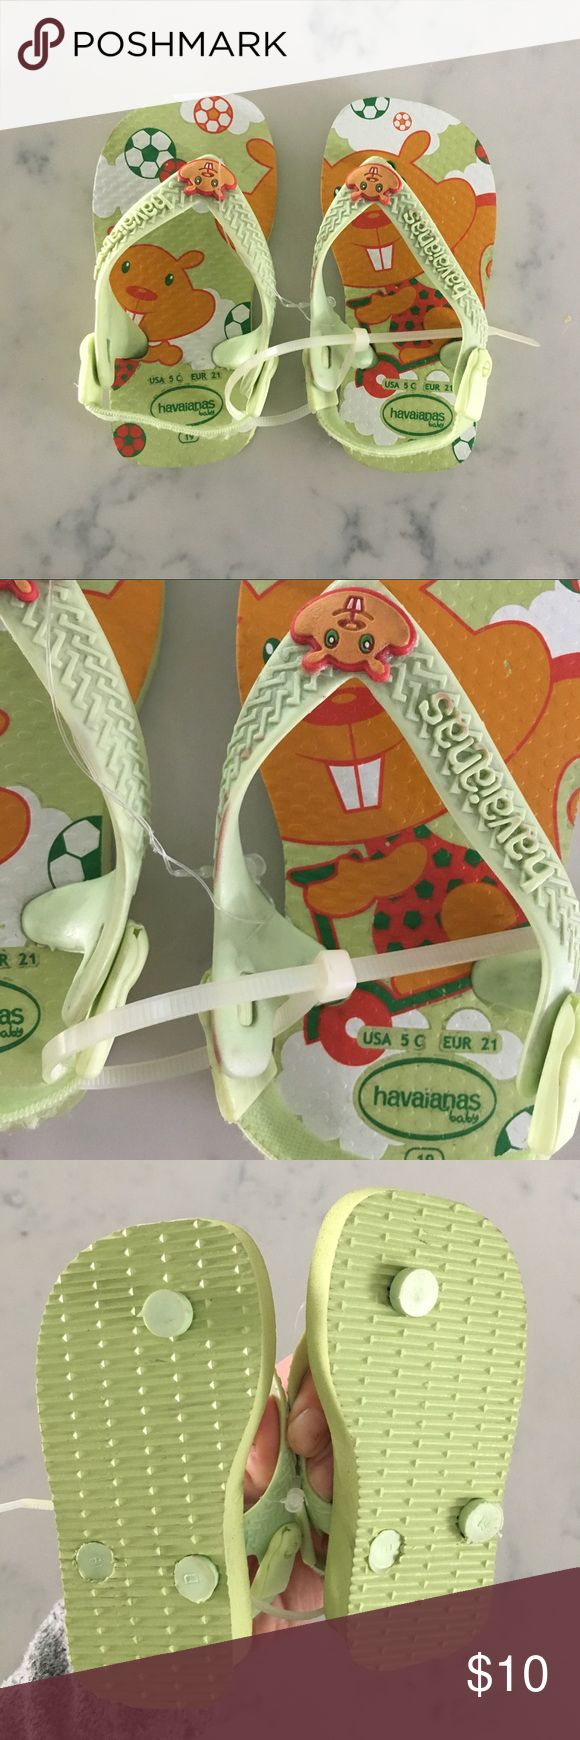 Baby Havaianas flip flops New, with very minor coloration flaws on the straps of one of the sandals, as pictured (they were there when I purchased them). Gender neutral. Havaianas Shoes Sandals & Flip Flops